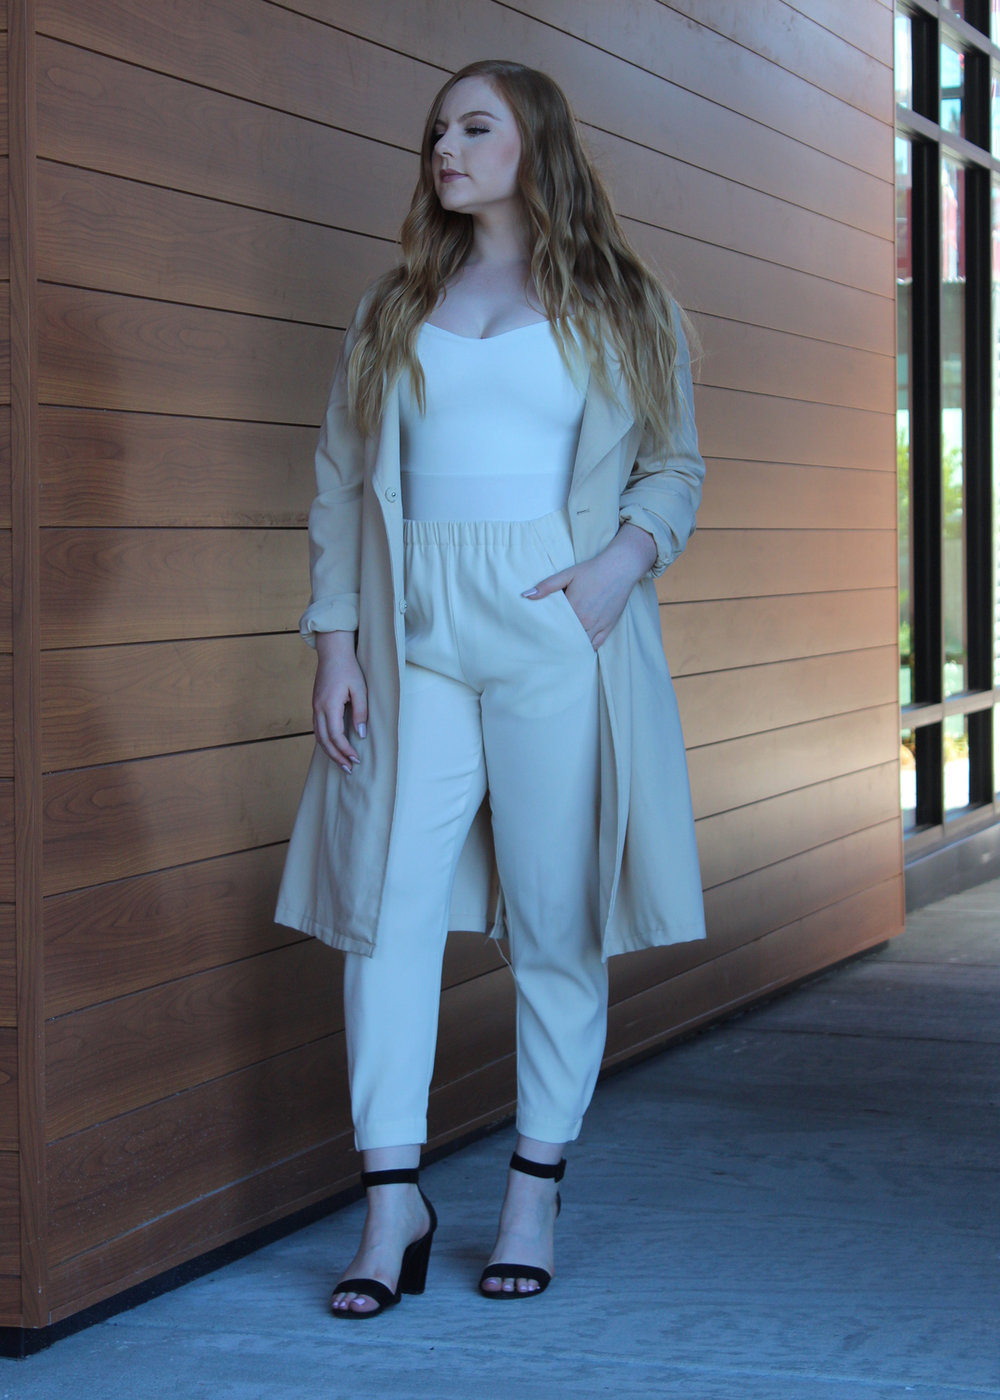 White After Labor Day is a Thing - When the tones are right, you just do it. This white body suit paired with creme crepe trousers and a taupe trench coat tie a risky light neutral toned look together. When you have similar toned items in your closet, try pairing them together. You never know, they may compliment each other in all the right ways.